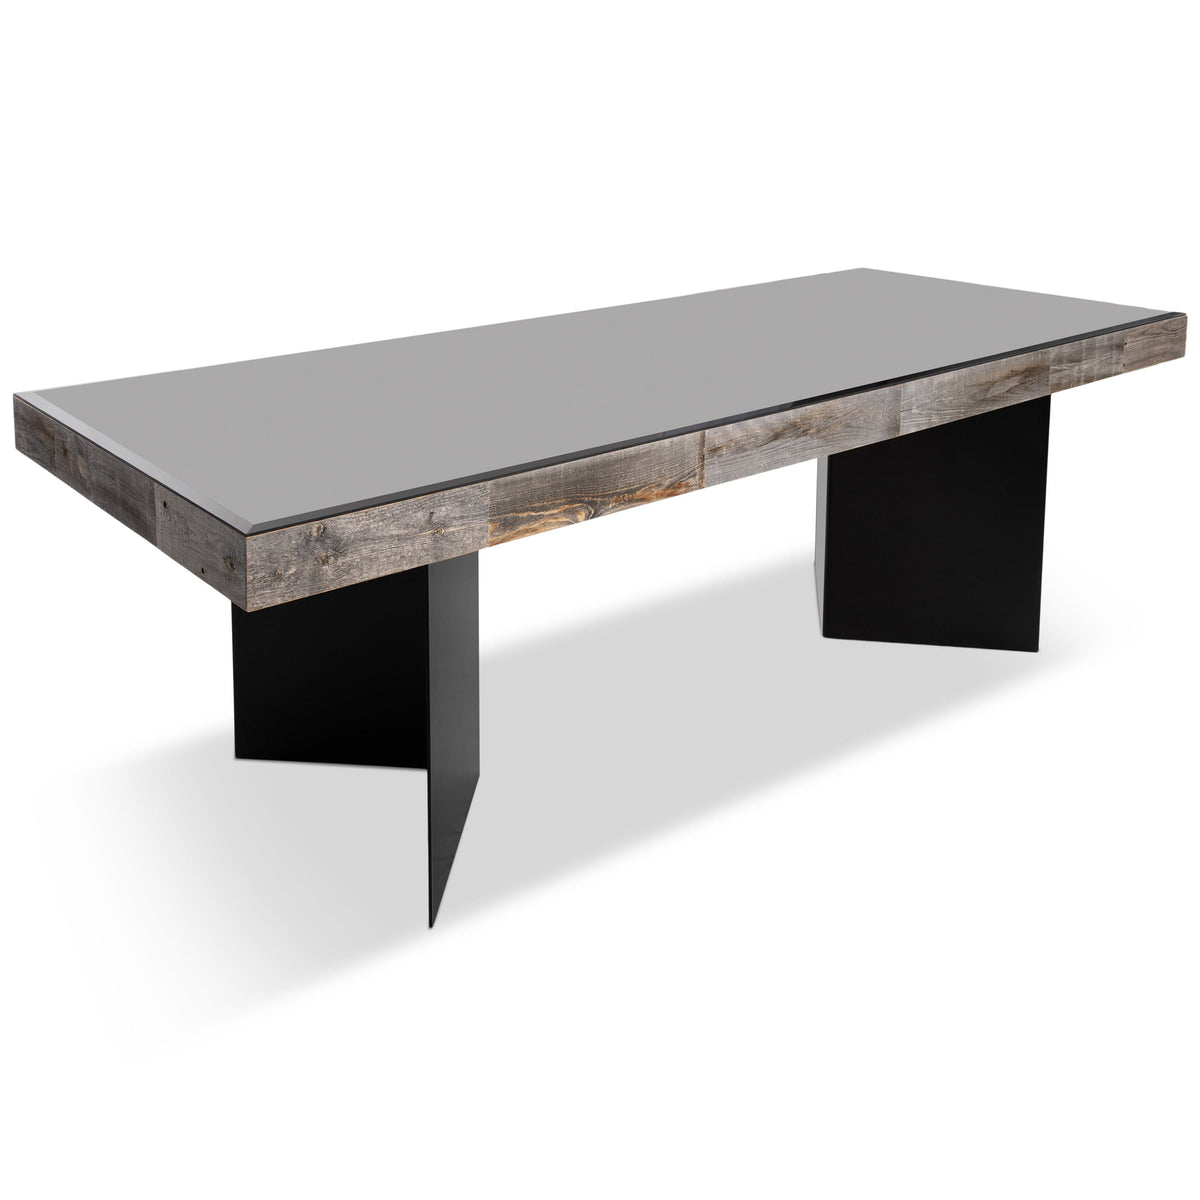 Cody Dining Table in Metal V-base